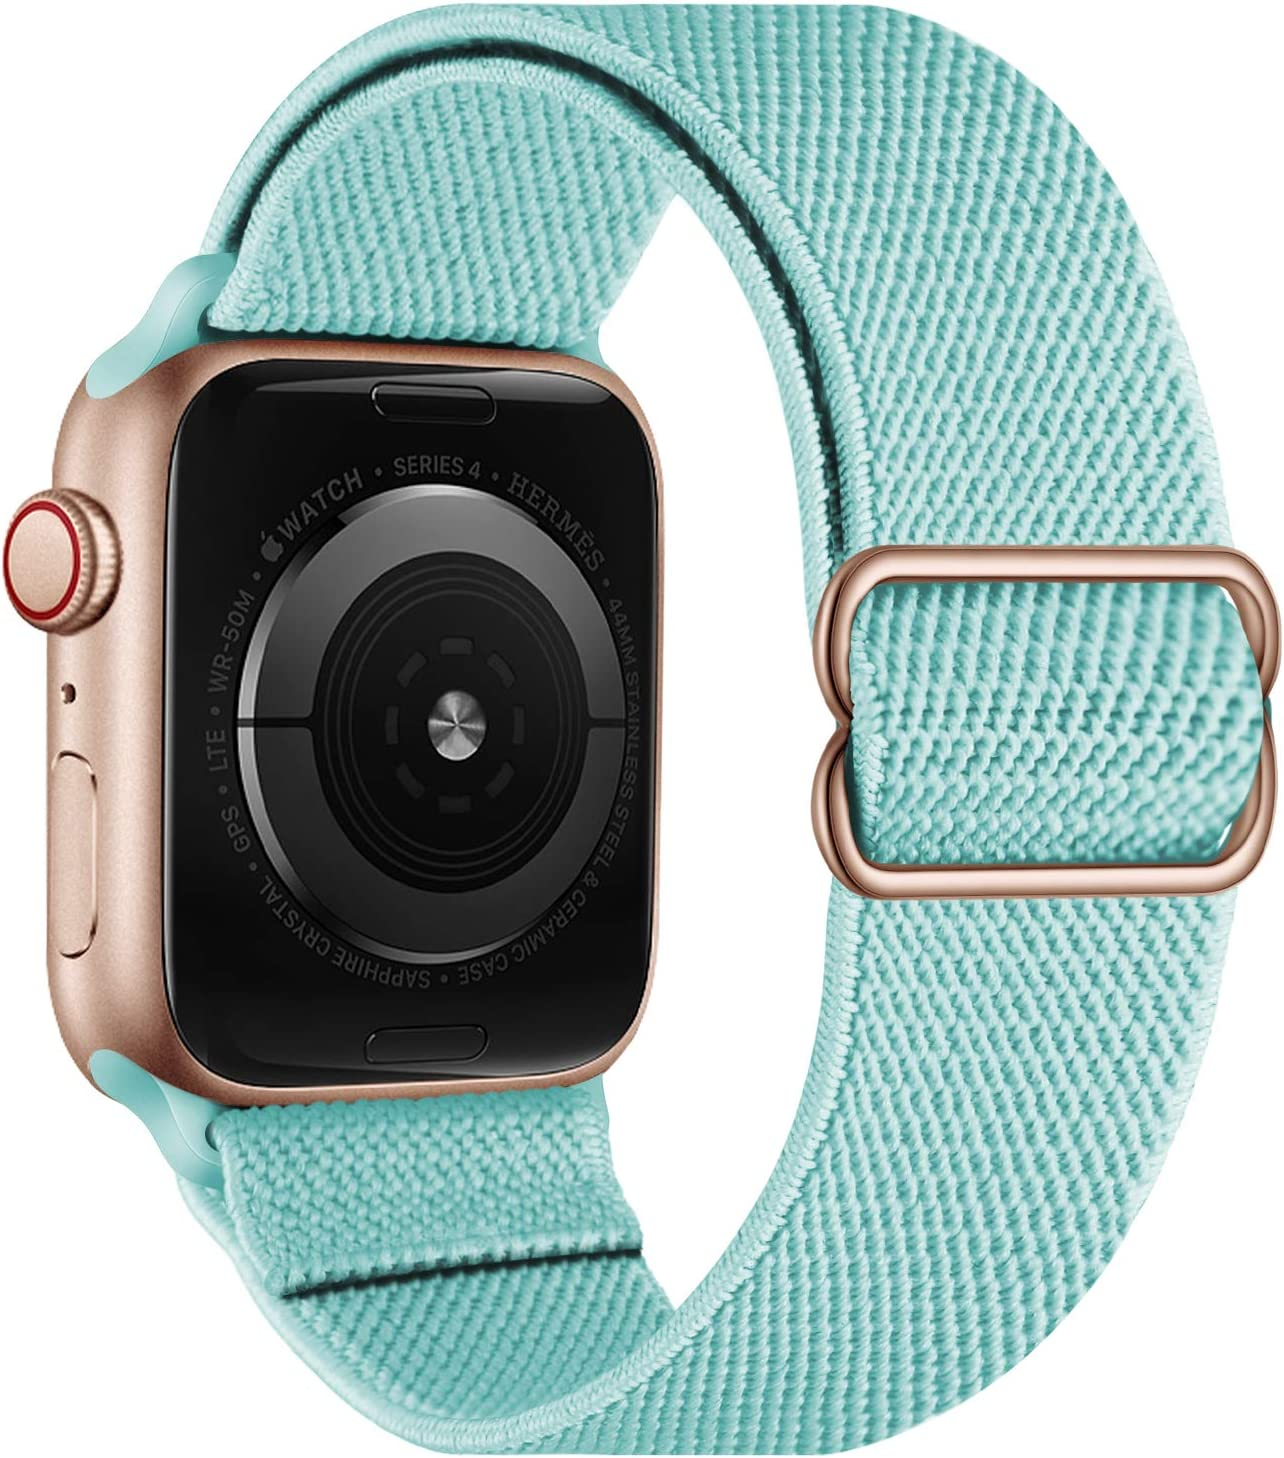 OXWALLEN Stretchy Nylon Solo Loop Compatible with Apple Watch Bands 38mm 40mm, Adjustable Elastic Braided Stretches Women Men Strap for iWatch SE Series 6/5/4/3/2/1,Mint Green